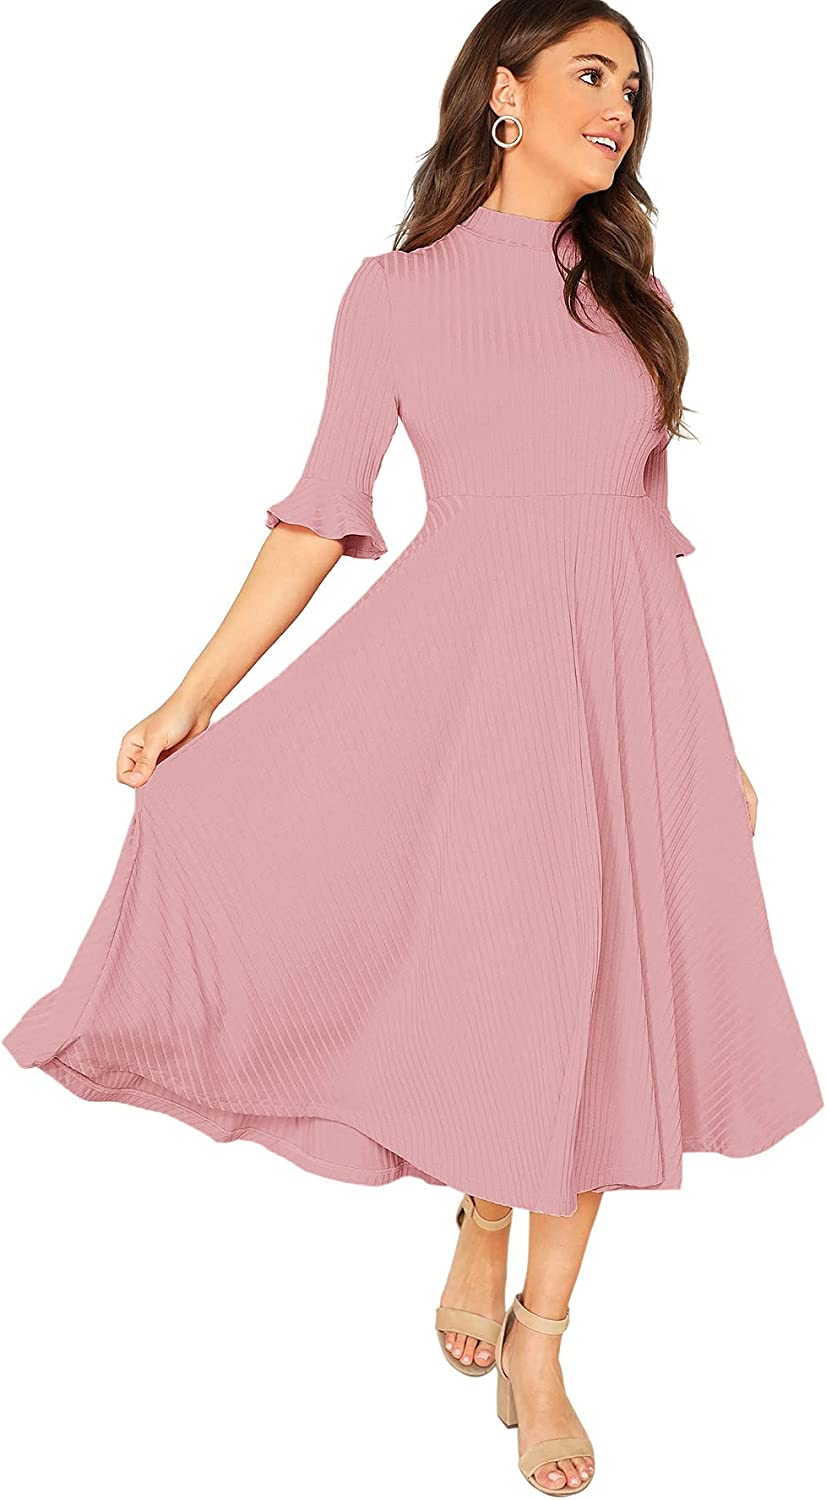 Verdusa Women's Elegant Ribbed Knit Bell Sleeve Fit and Flare Midi Dress